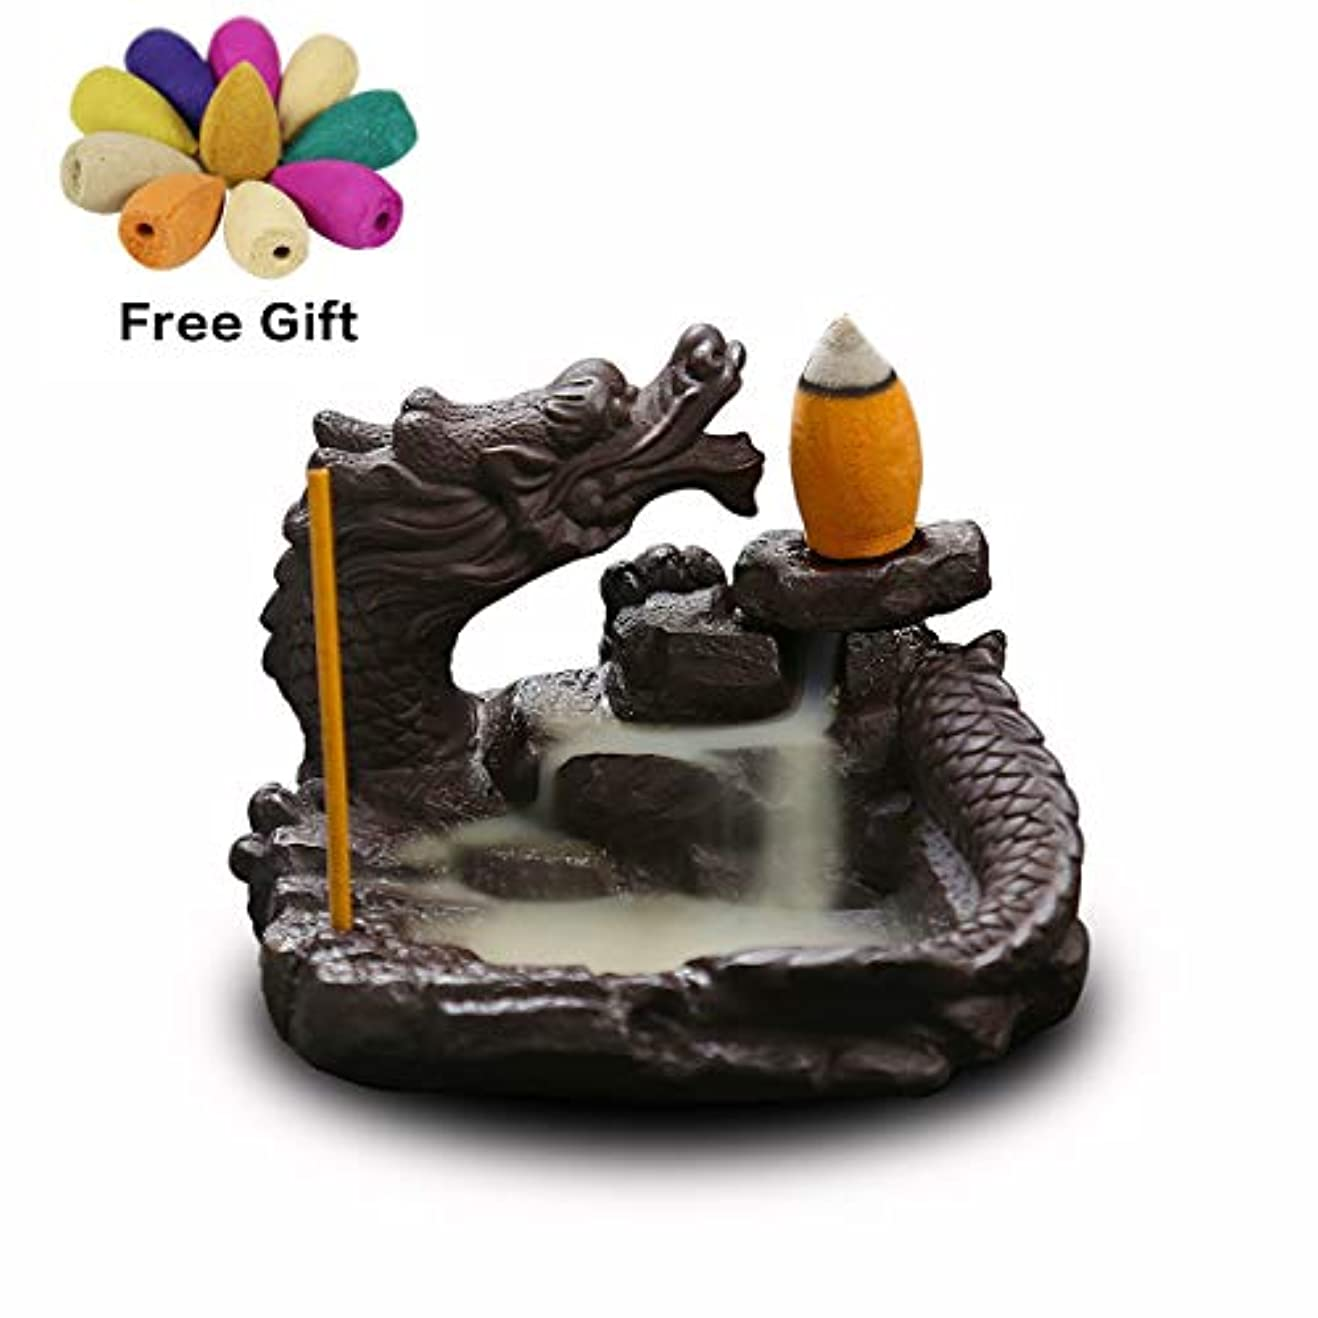 持参スコットランド人面白い(Style6) - OTOFY Mythical Dragon Backflow Incense Holder Figurine Incense Cone Holder Gothic Home Decor